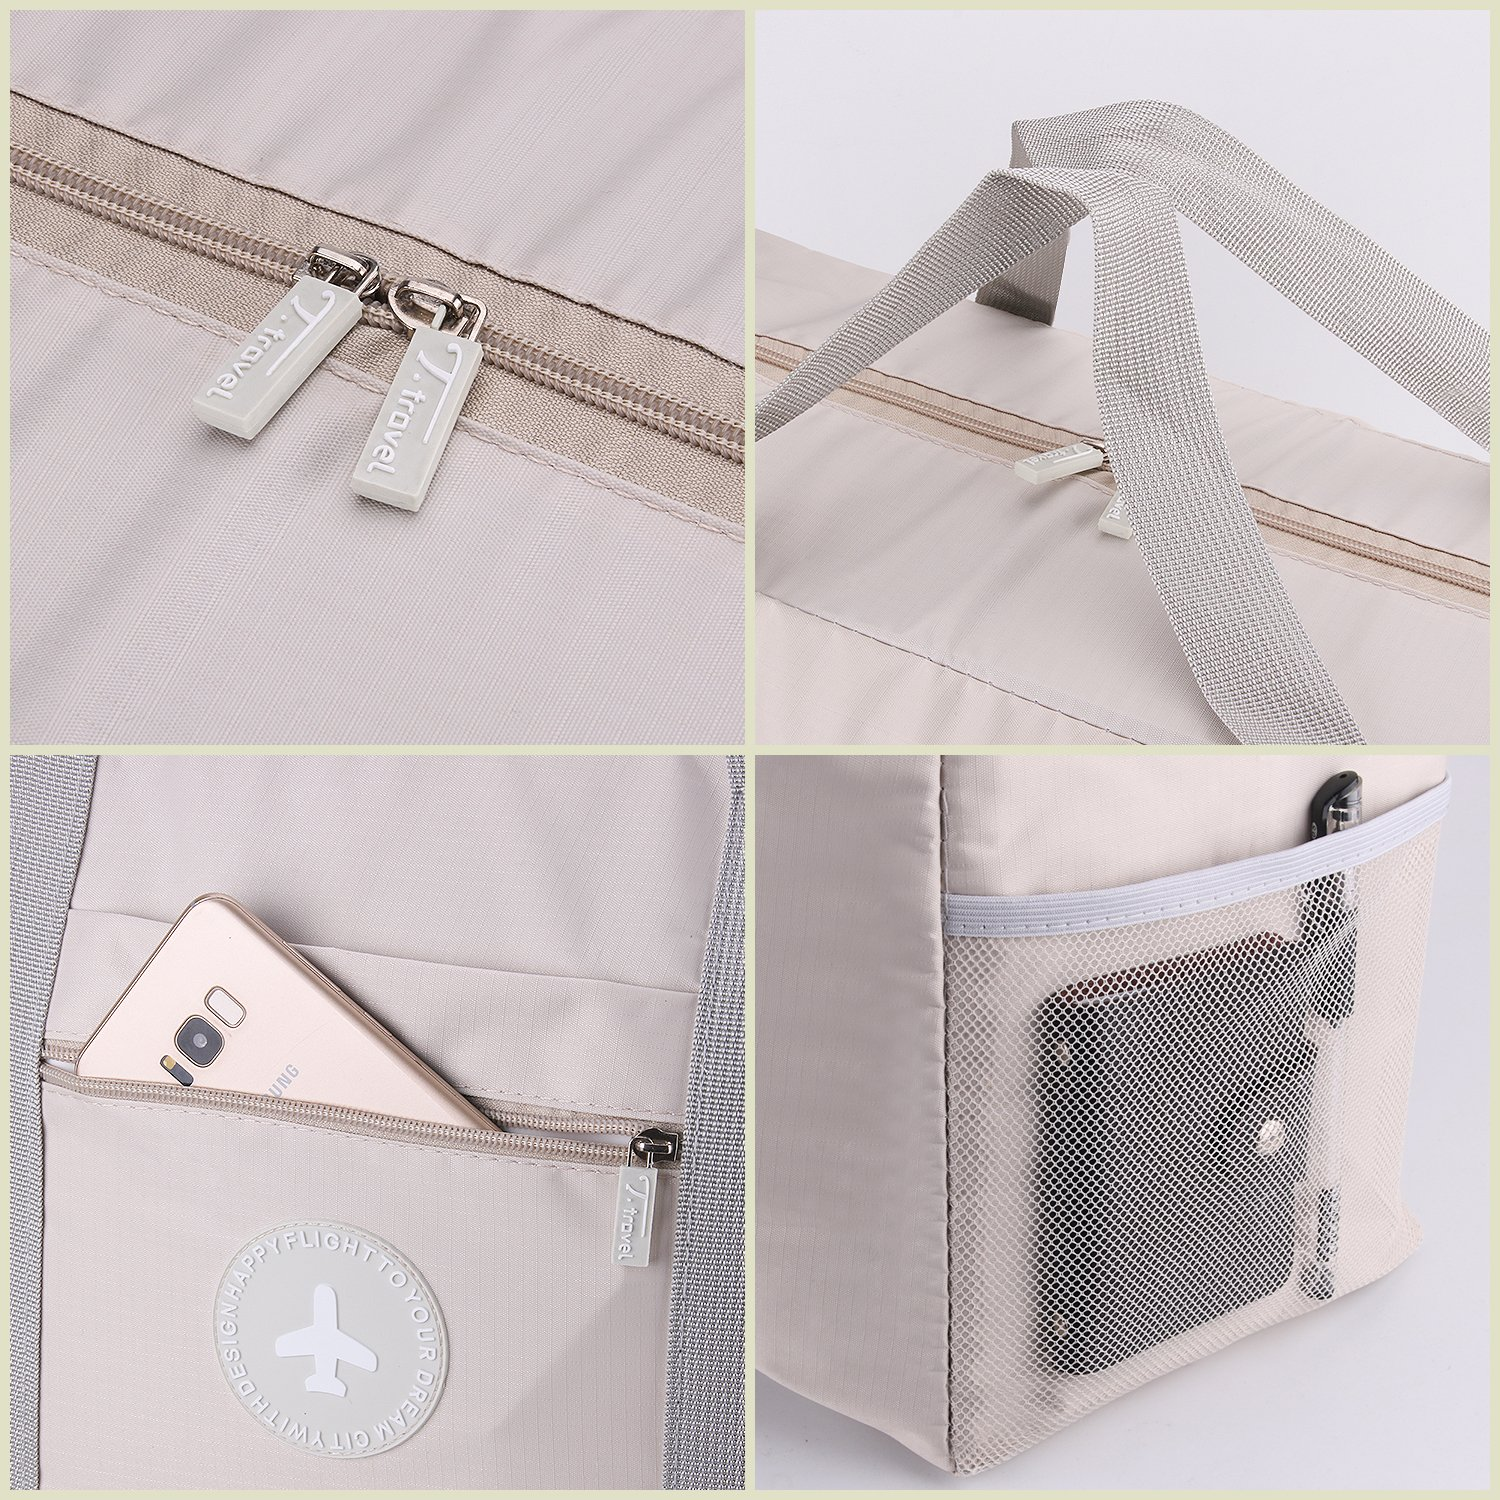 Foldable Travel Bag Waterproof Travel Tote Bag Foldable Bag Fully Lined with Gray Fabric (UPGRADE) by MuYiZi (Image #2)